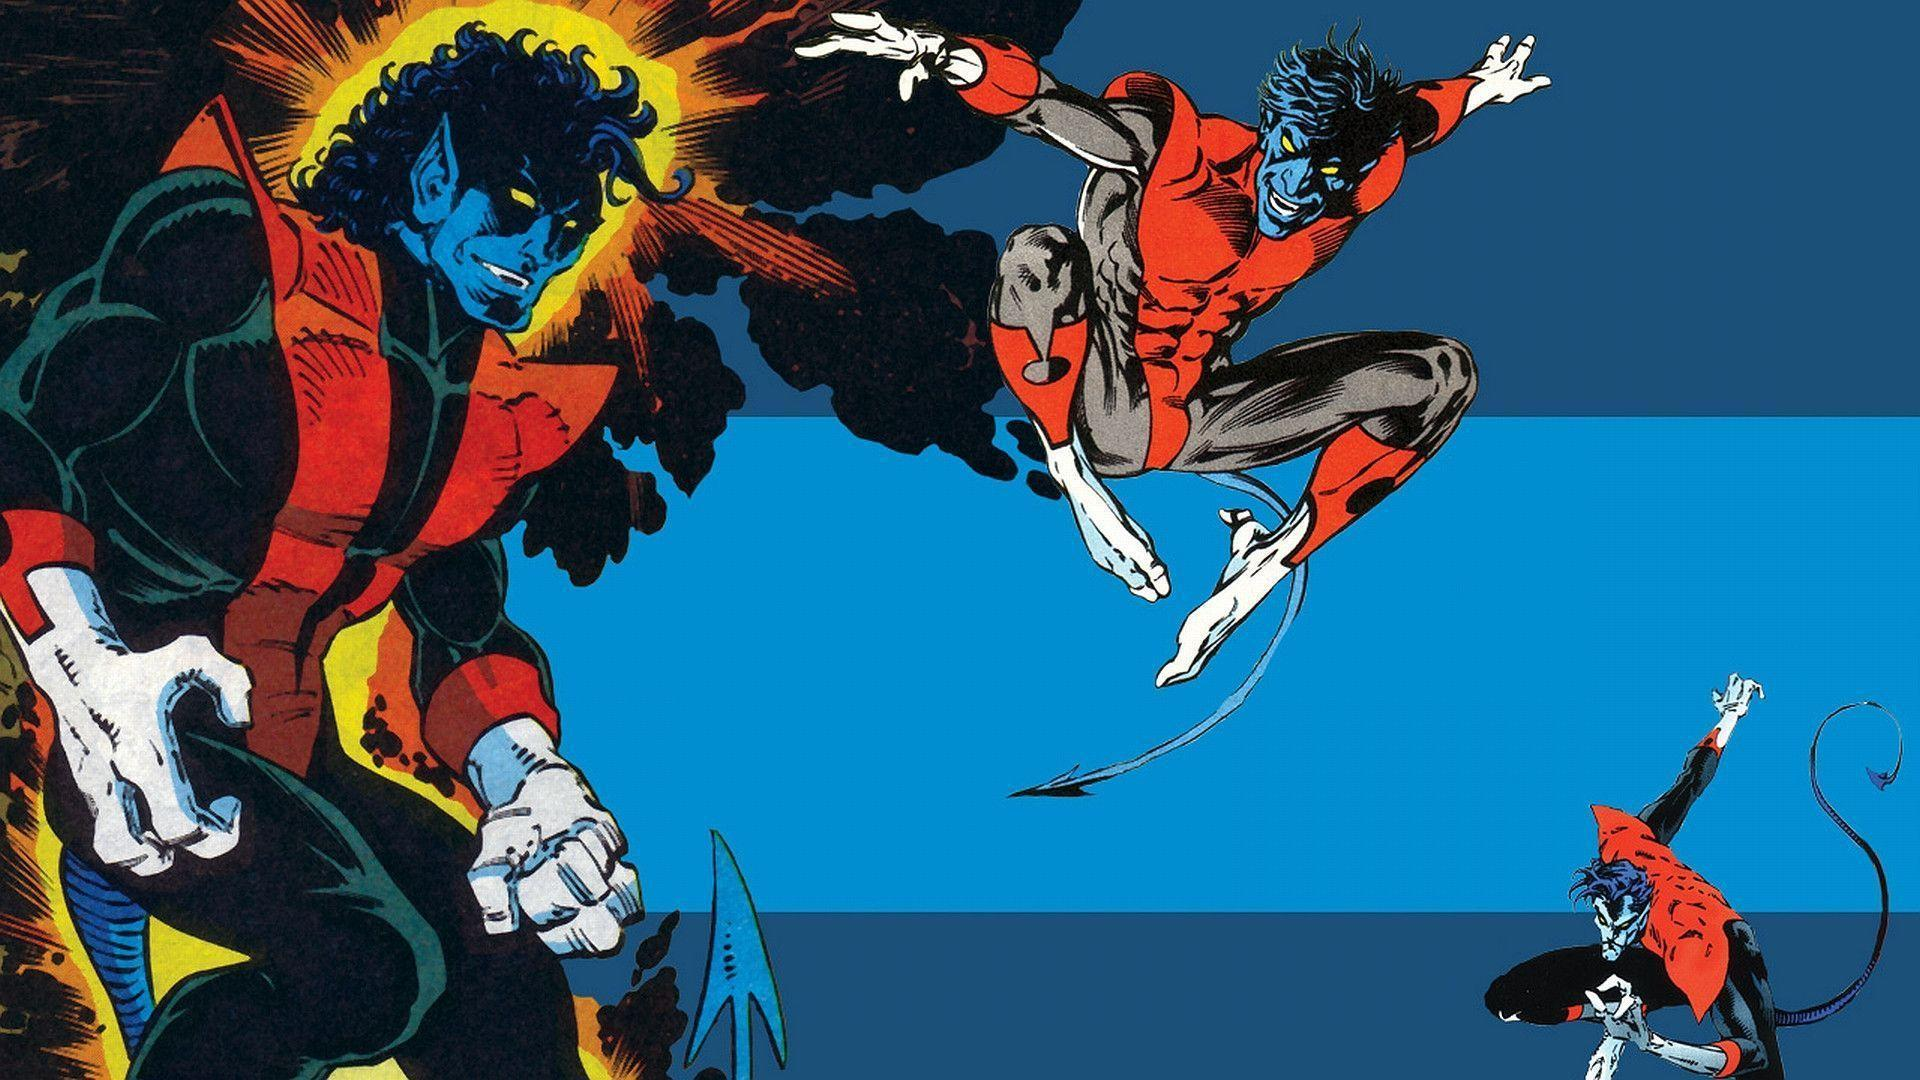 Nightcrawler Computer Wallpapers, Desktop Backgrounds 1920x1080 Id